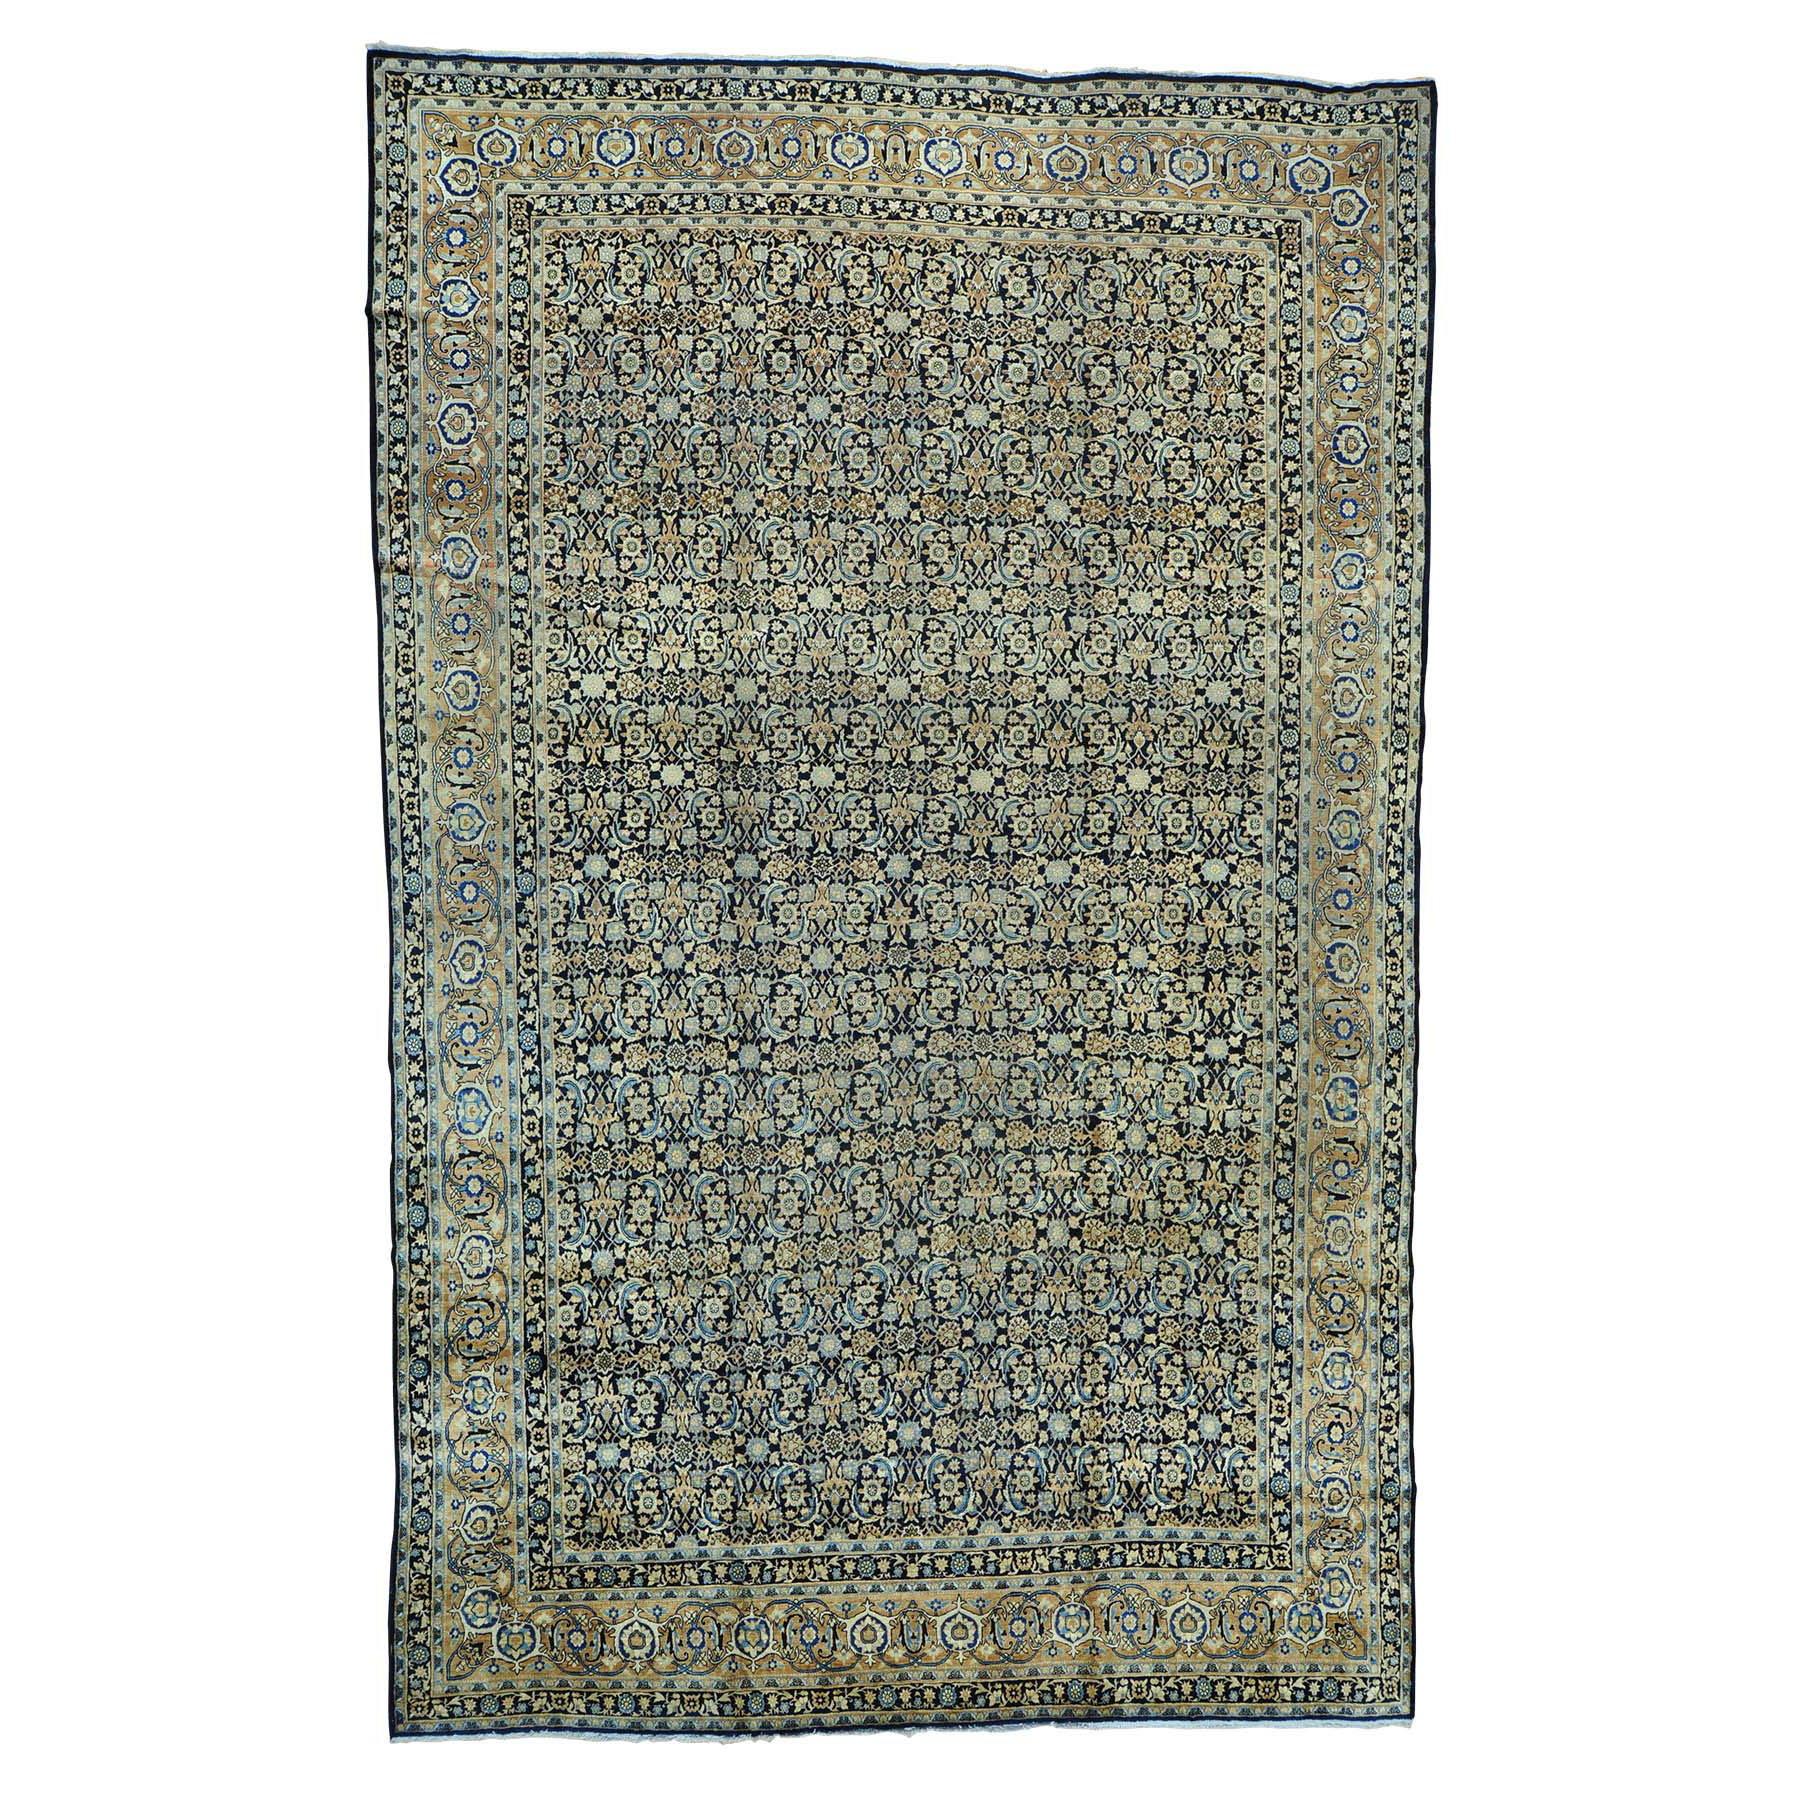 Antique Collection Hand Knotted Blue Rug No: 0152852